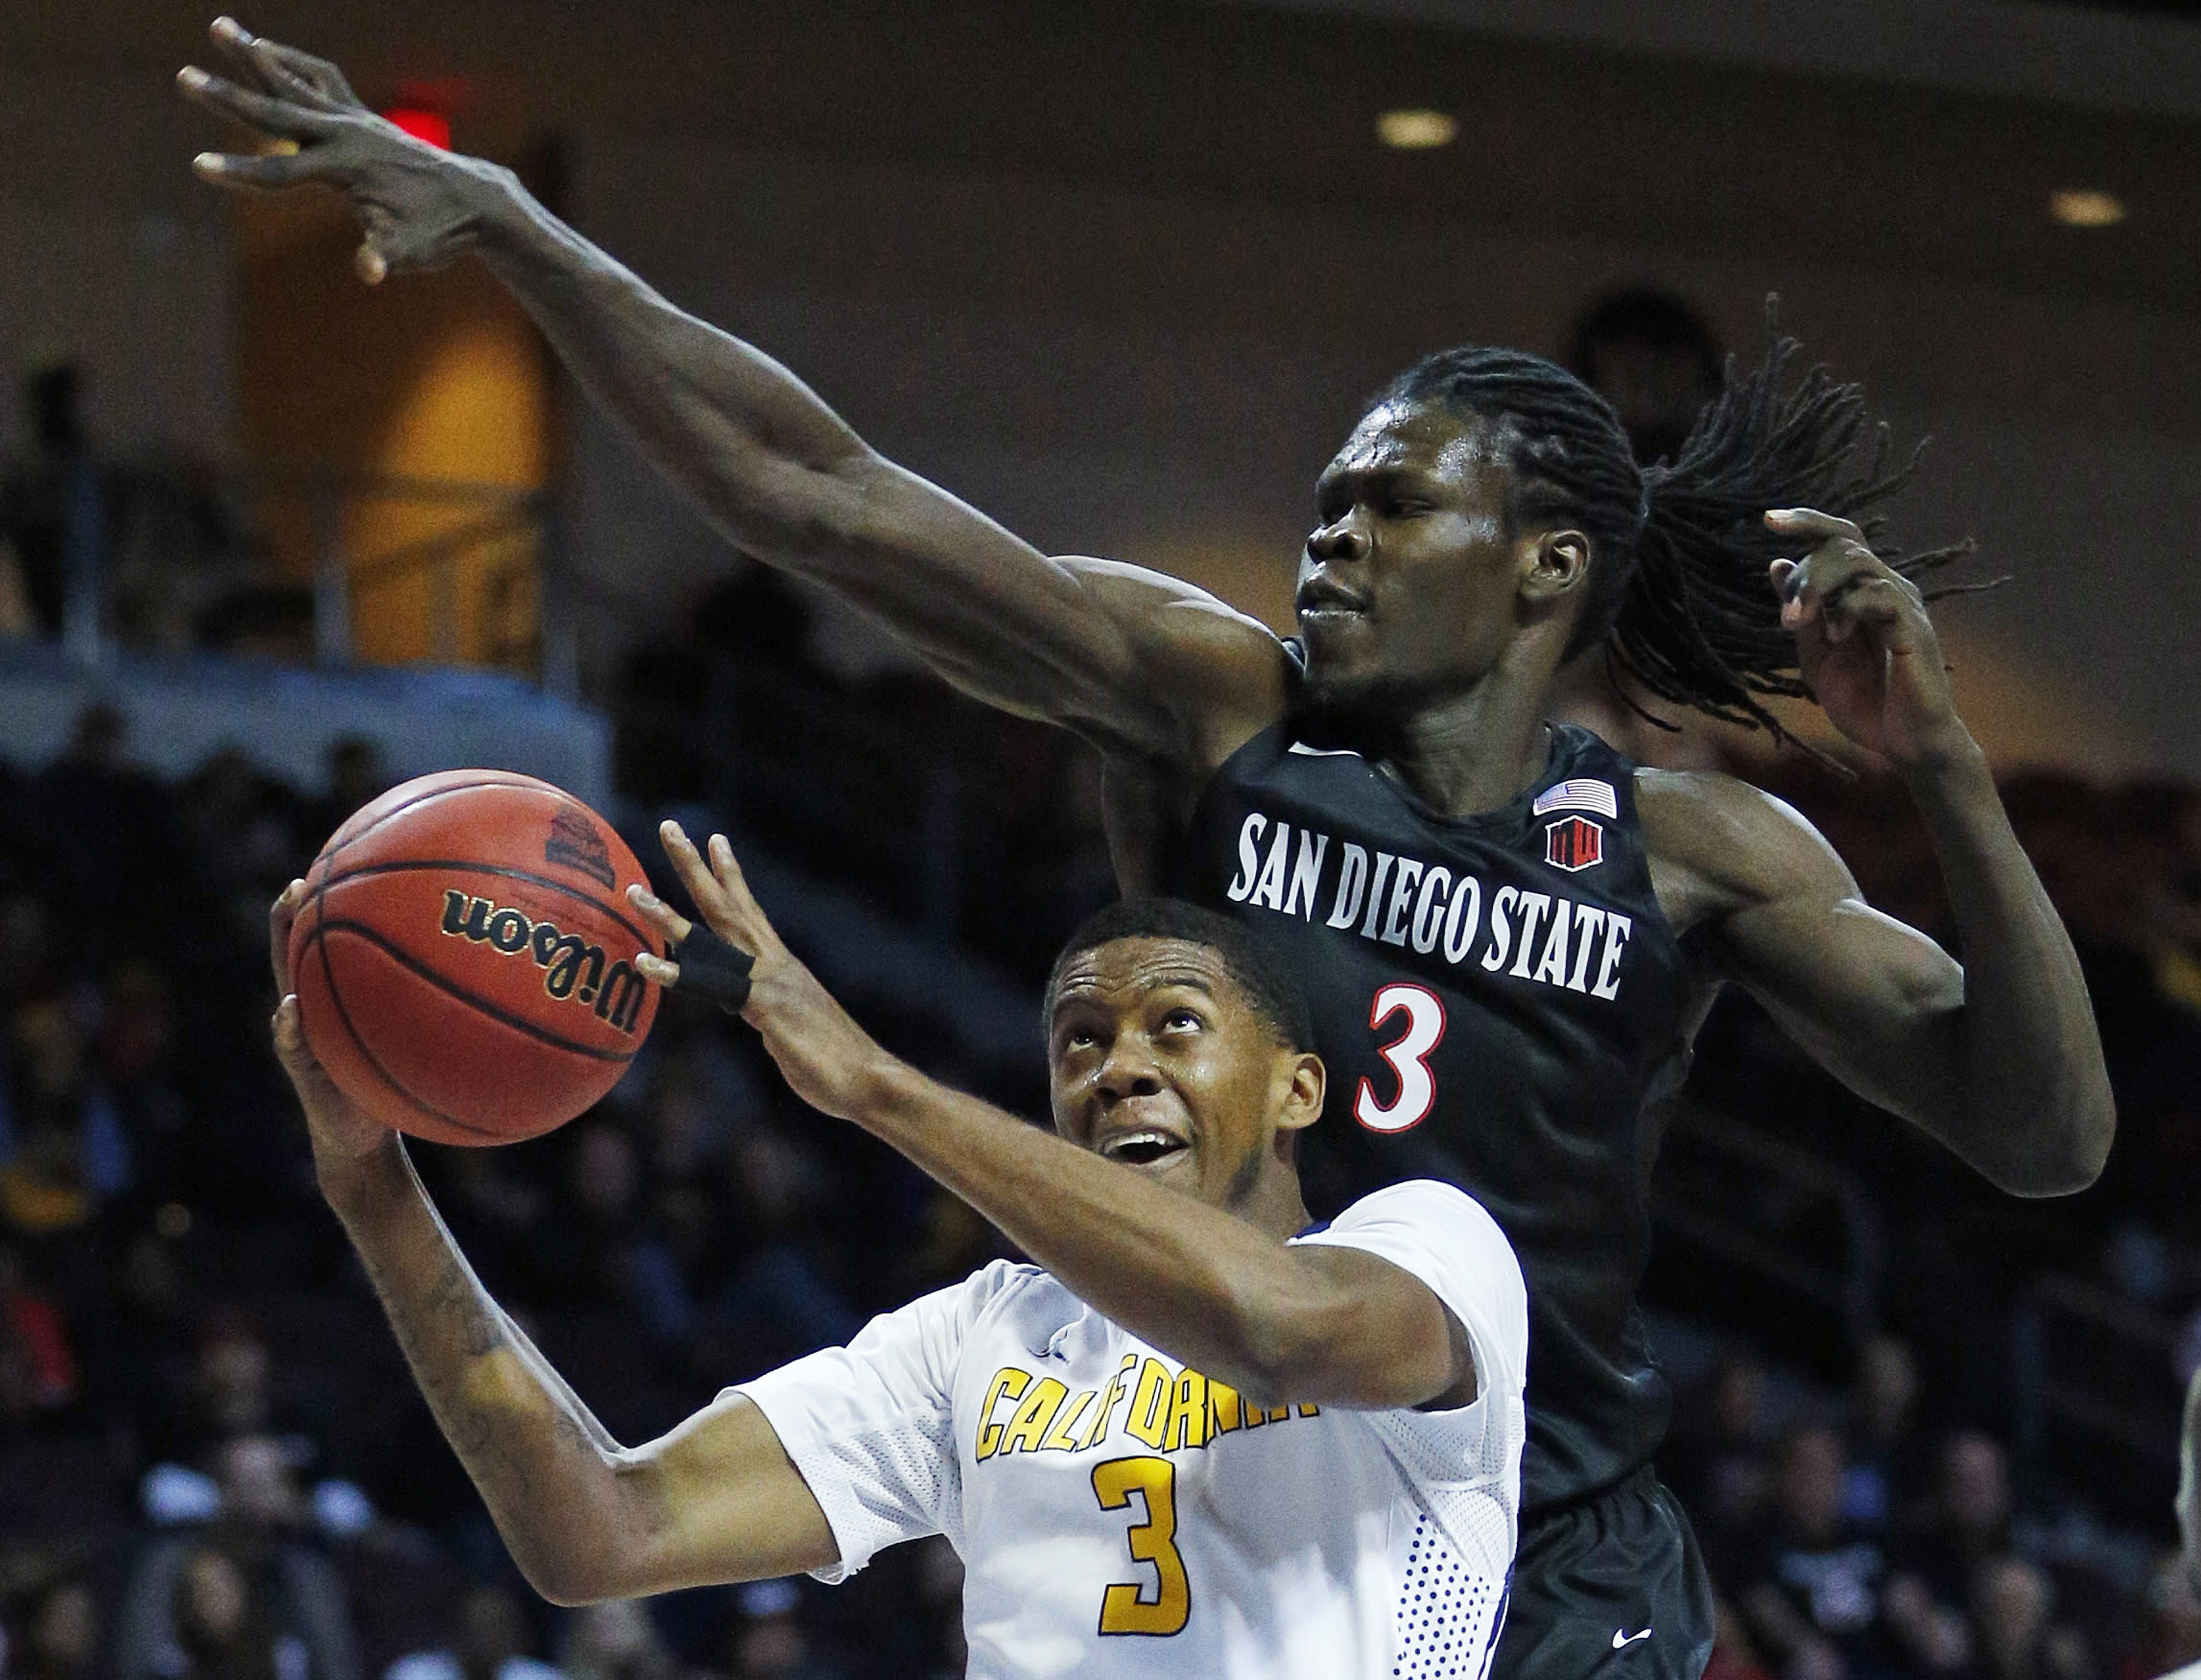 Spencer, Shepard lead San Diego St past No. 14 Cal 72-58